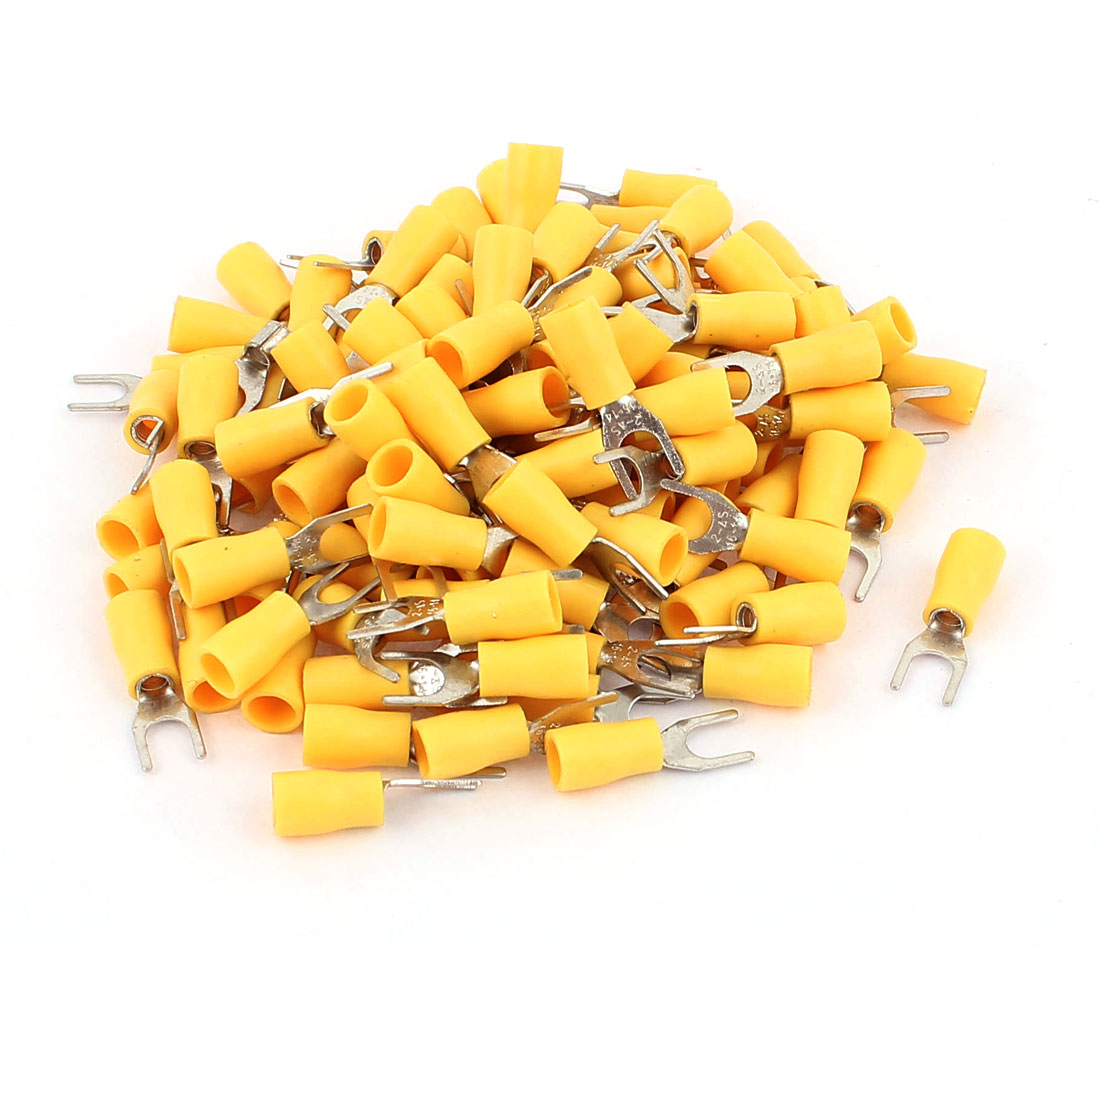 120pcs SVS2-4 Fork Spade Insulated Wire Terminal Connectors Yellow for AWG 16-14